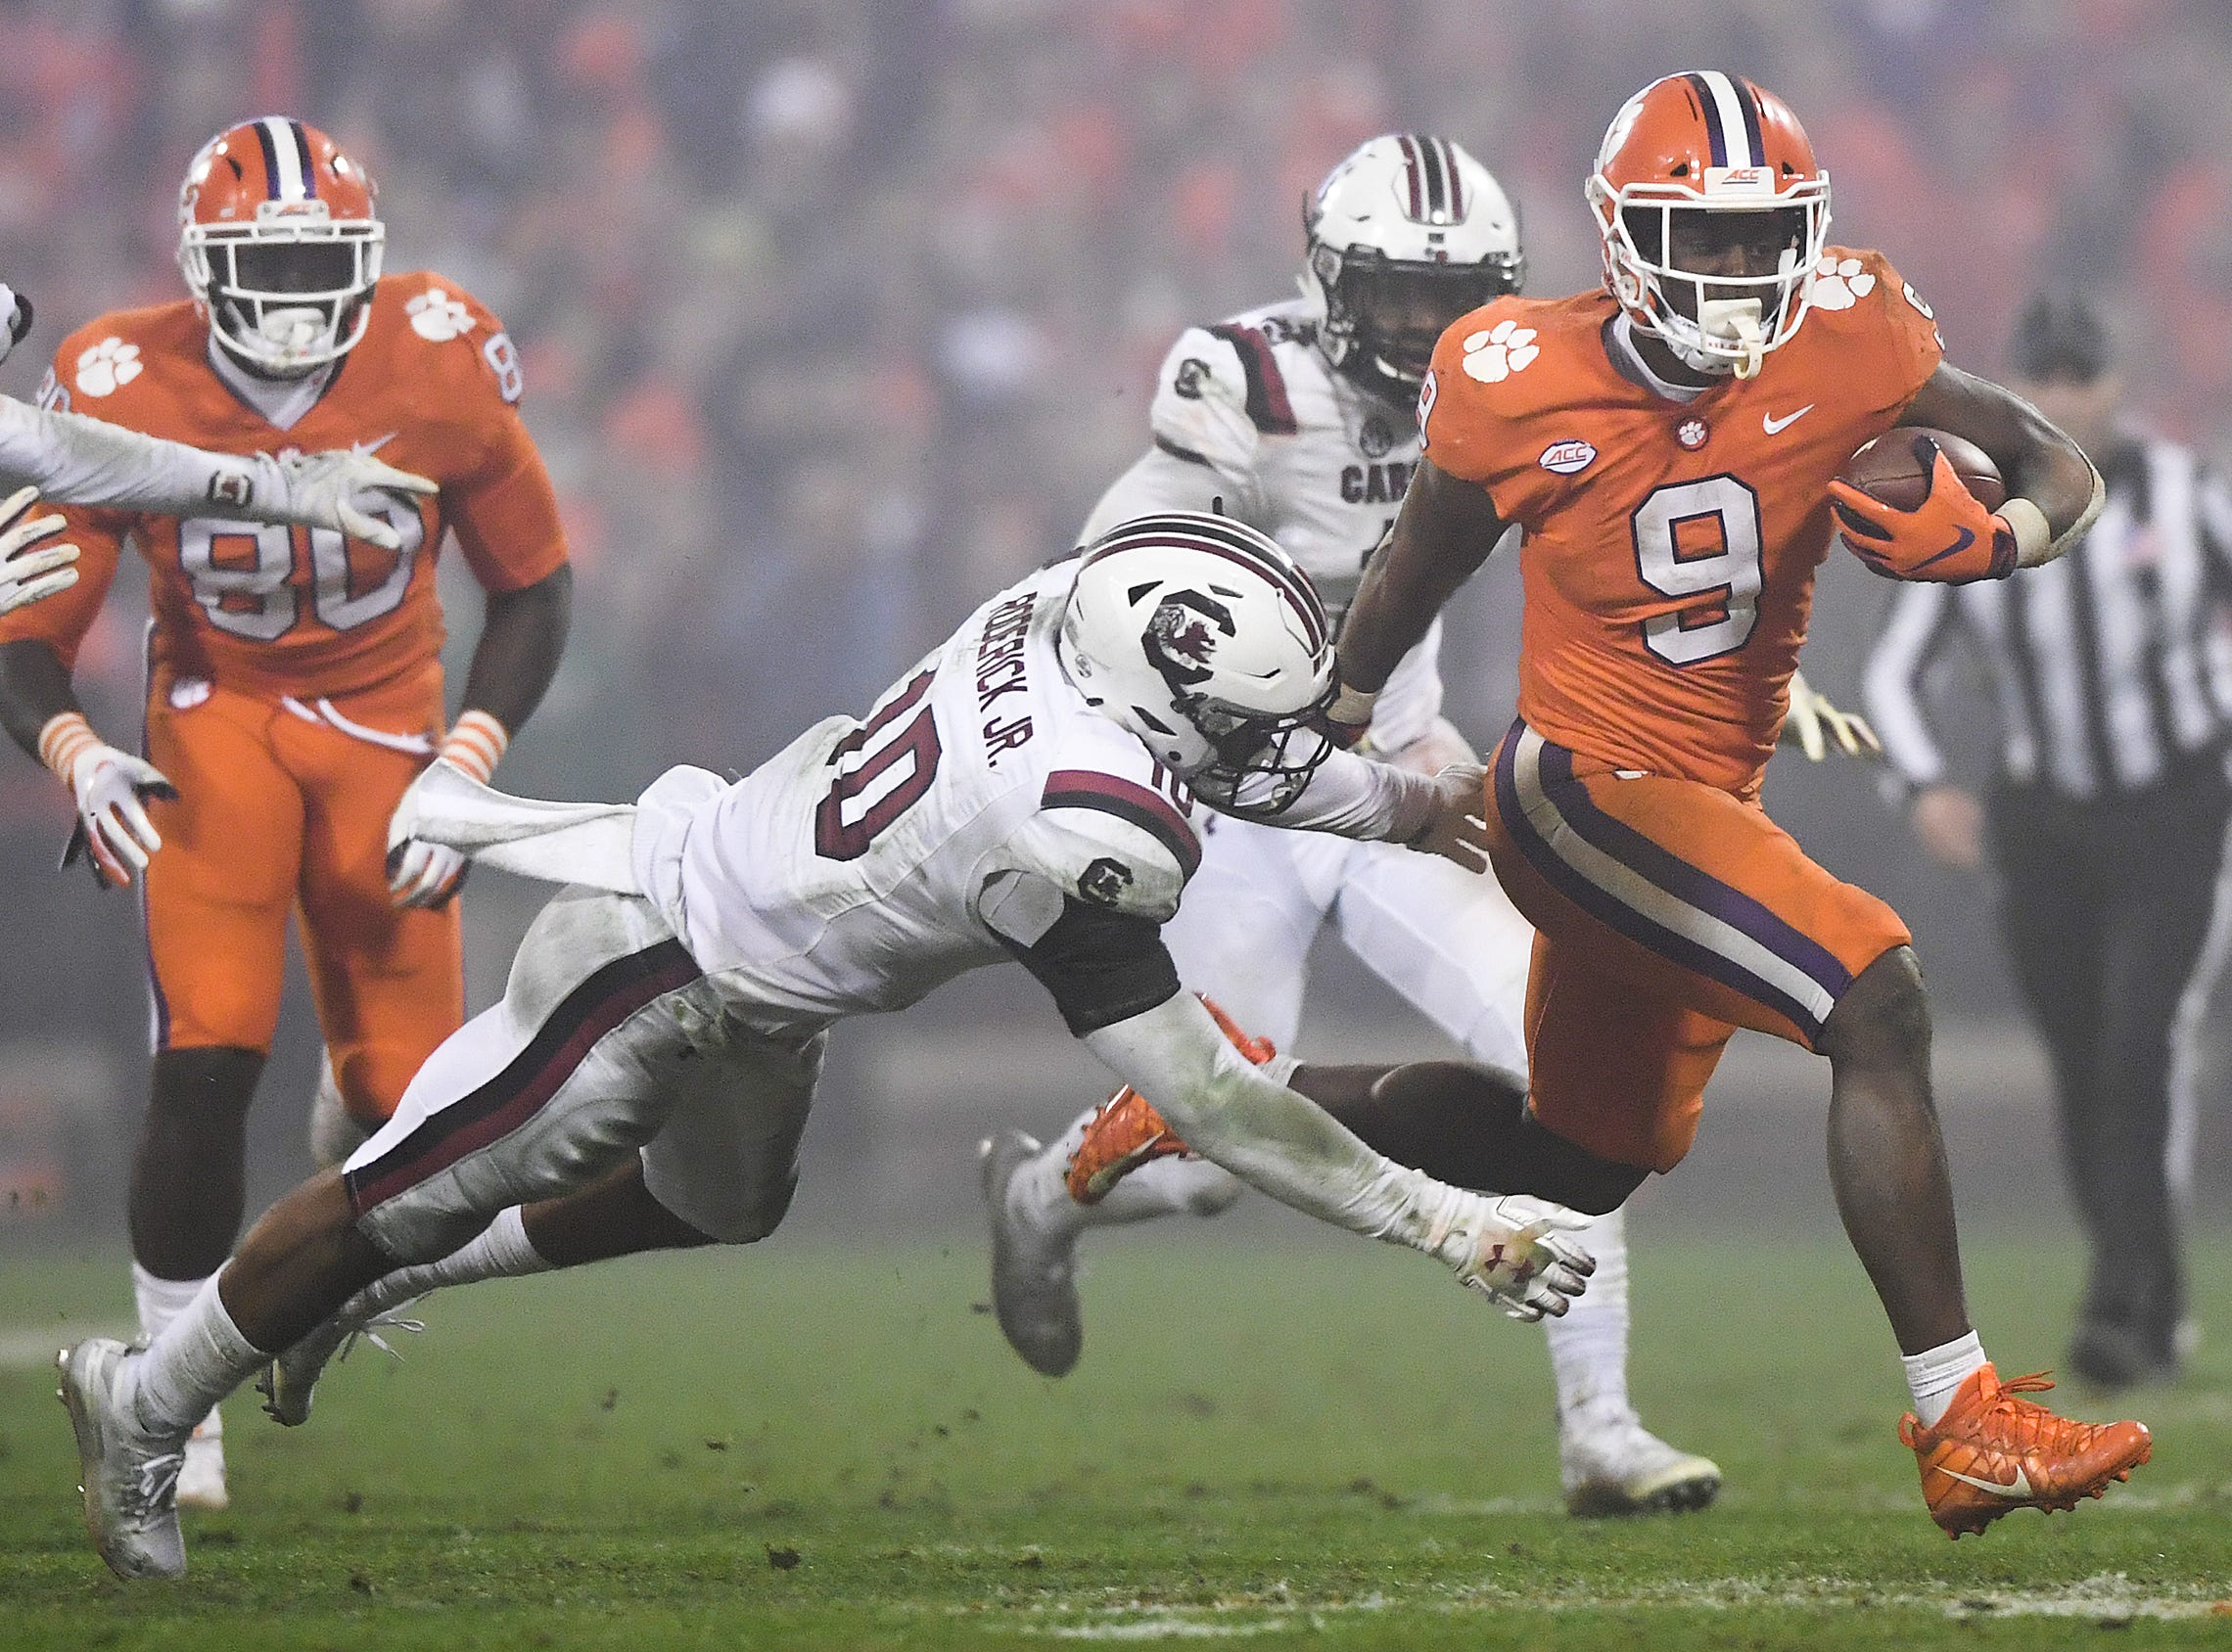 South Carolina safety R.J. Roderick (10) tries to stop Clemson running back Travis Etienne (9) during the 4th quarter Saturday, November 24, 2018 at Clemson's Memorial Stadium.